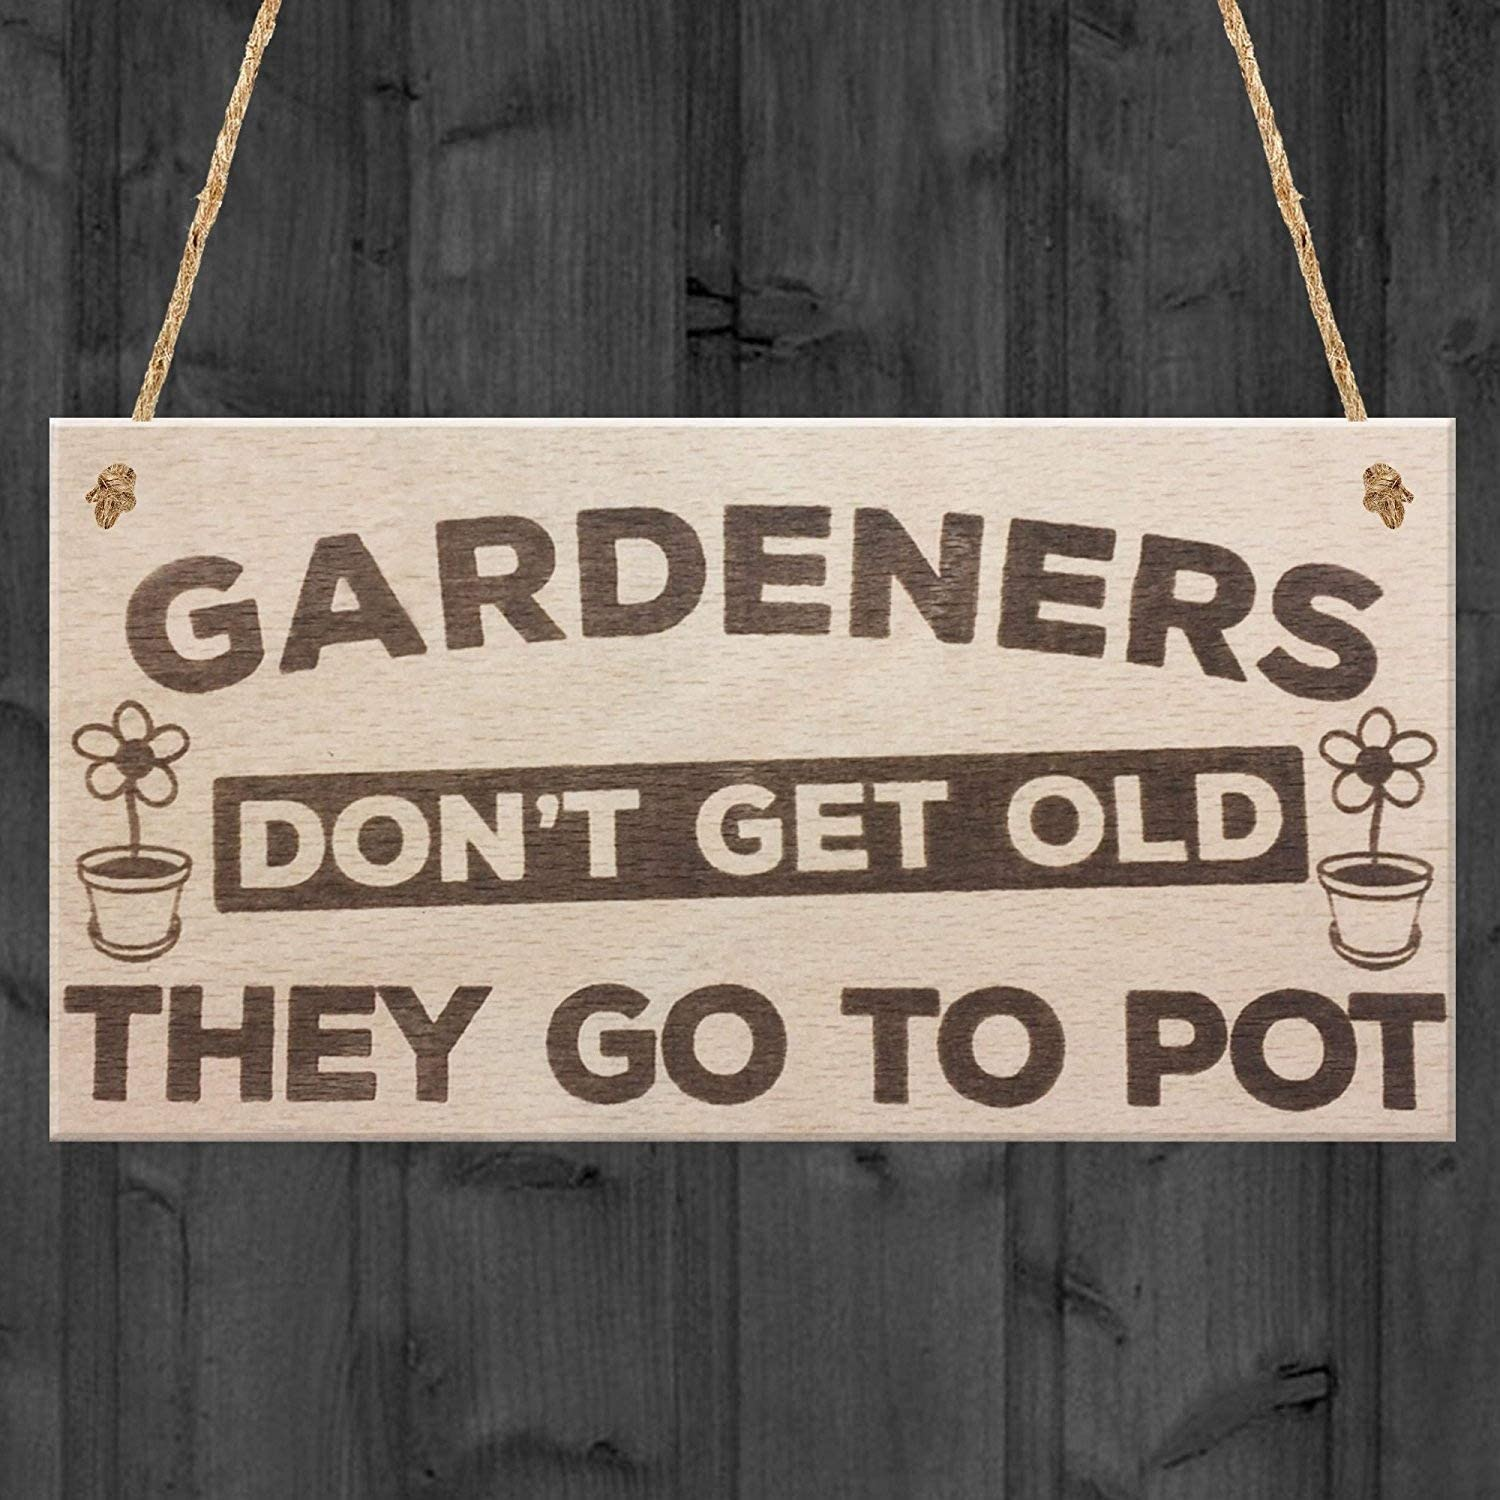 XLD Store Gardeners Don't Get Old They Go to Pot Wooden Hanging Garden Plaque Shabby Chic Sign